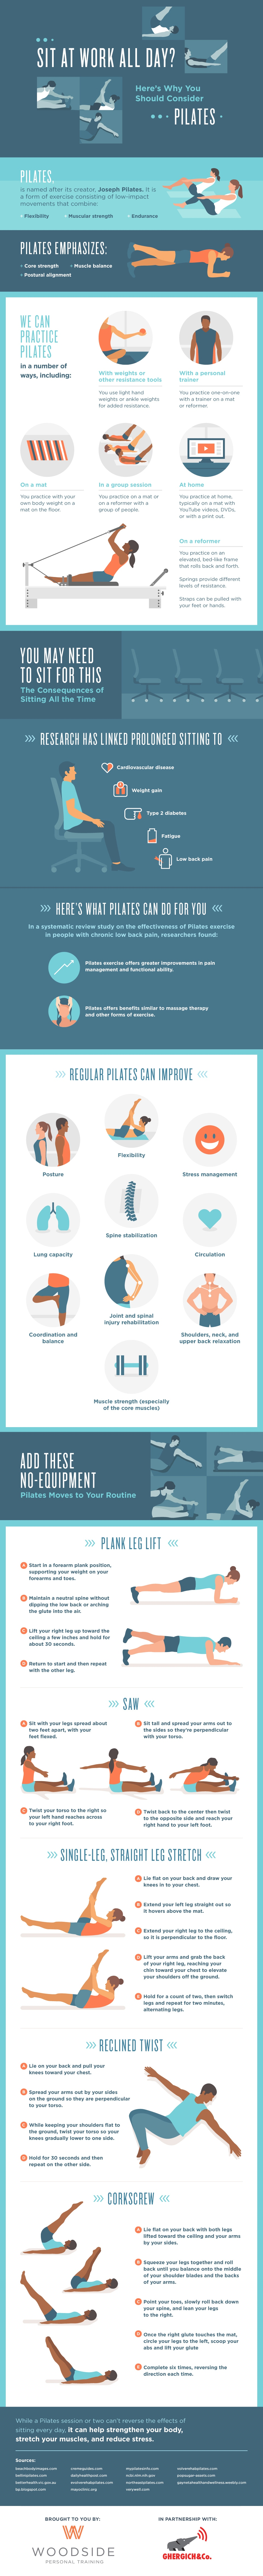 How Pilates Can Change Your Life - Infographic